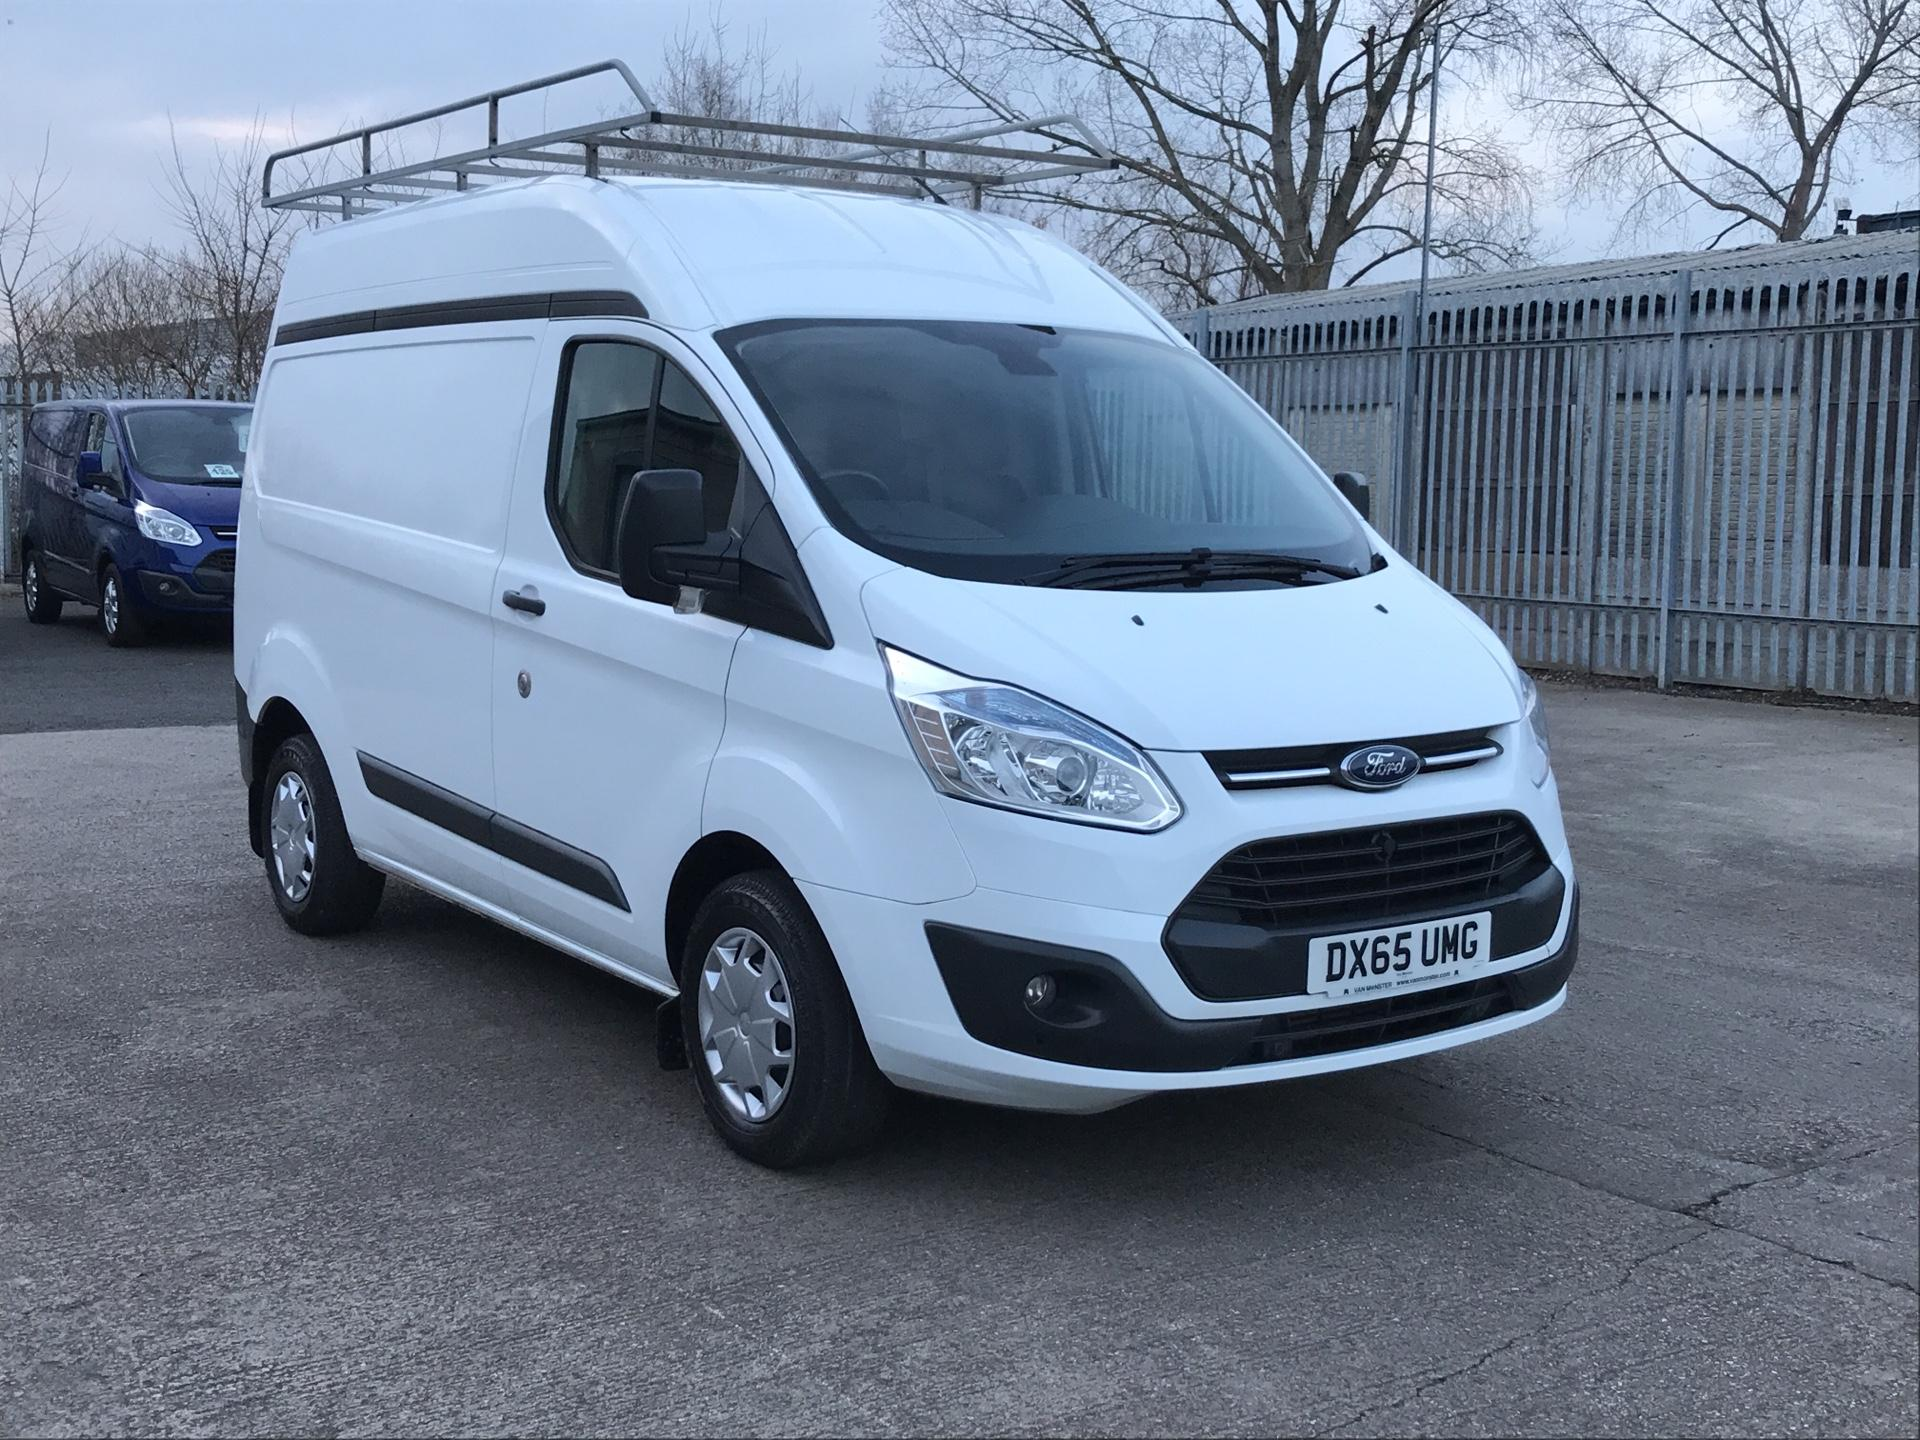 2015 Ford Transit Custom 270 L1 DIESEL FWD 2.2 TDCI 100PS LOW ROOF TREND EURO 5 (DX65UMG)